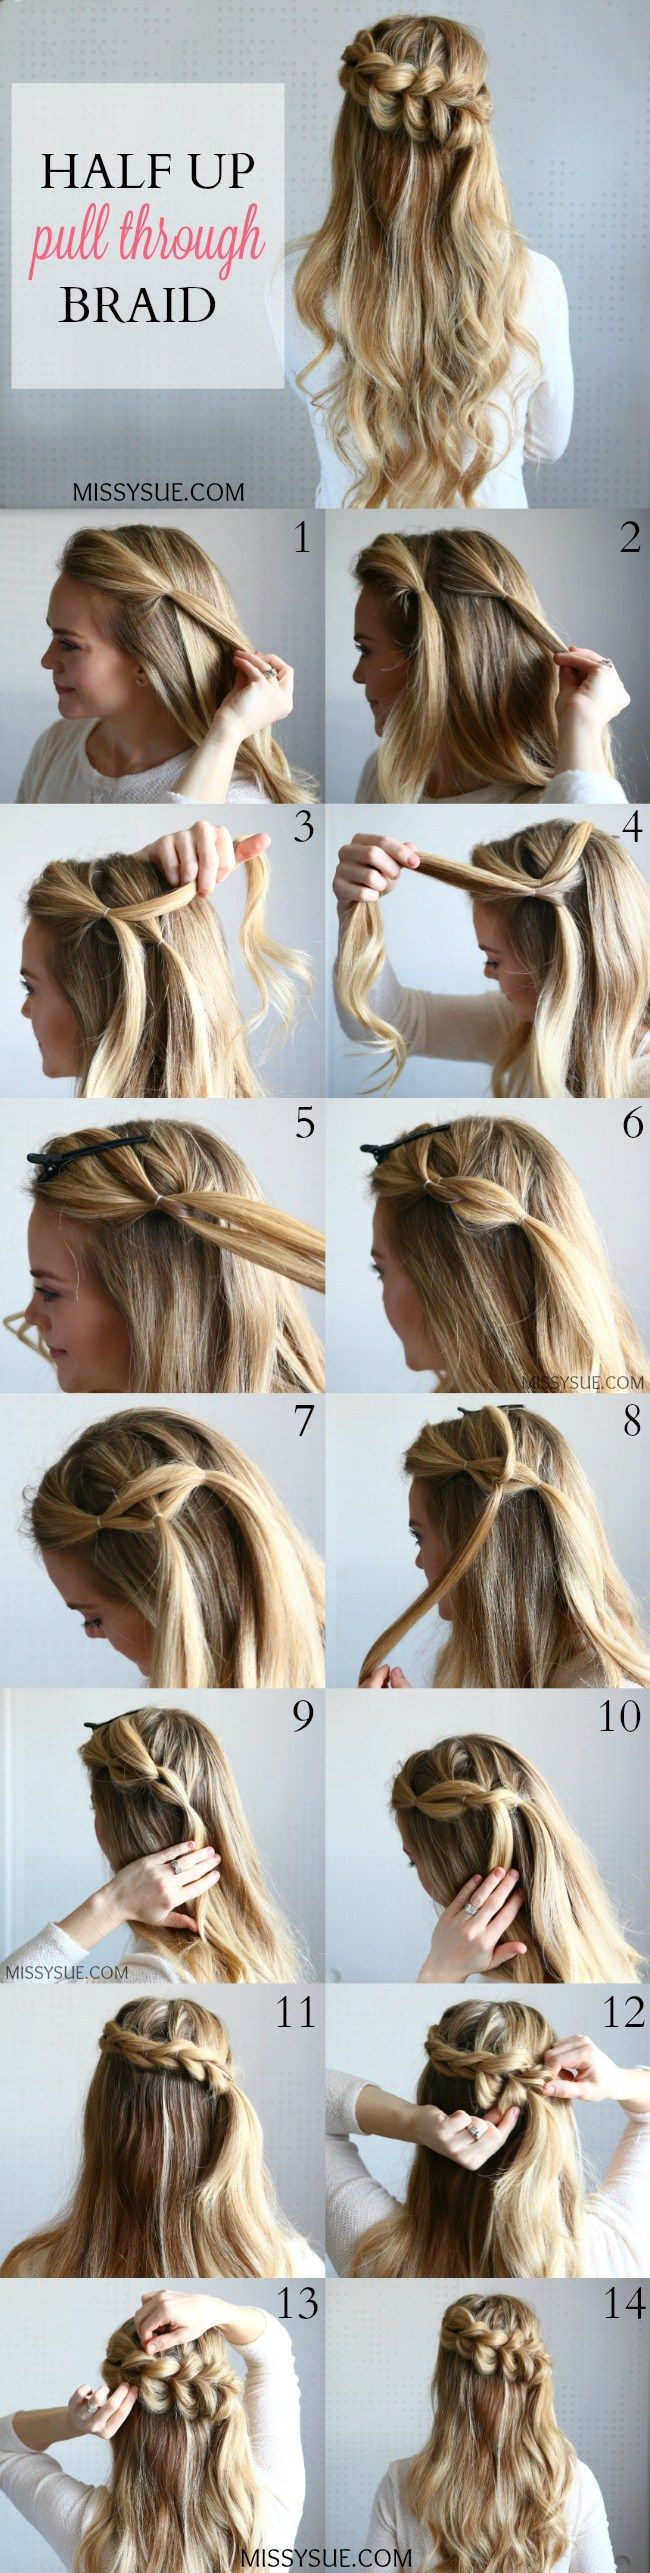 Half Up Pull Through Braid | Missy Sue